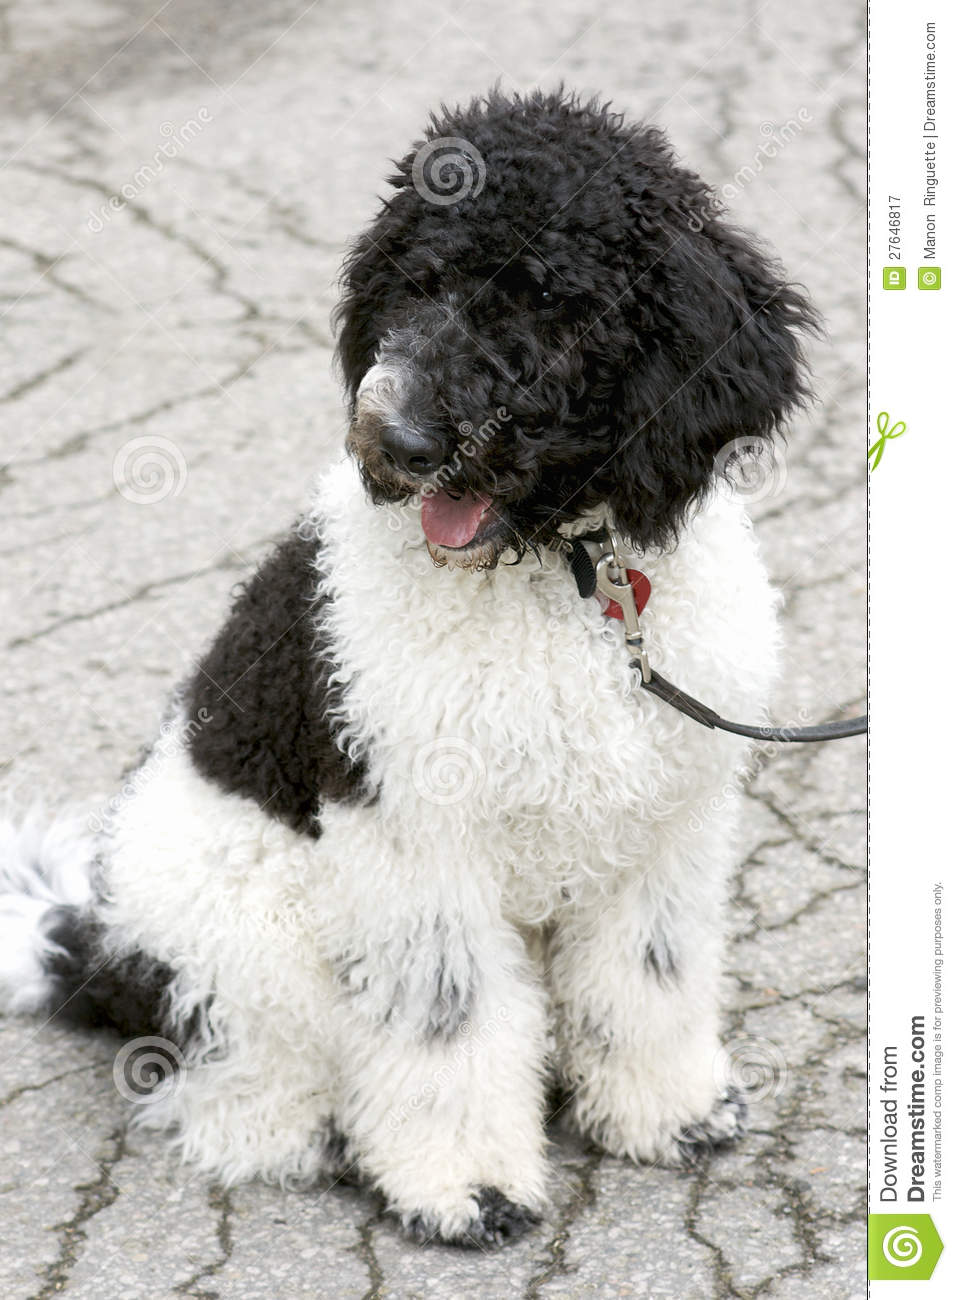 Black And White Standard Poodle Puppy Royalty Free Stock Photography ...